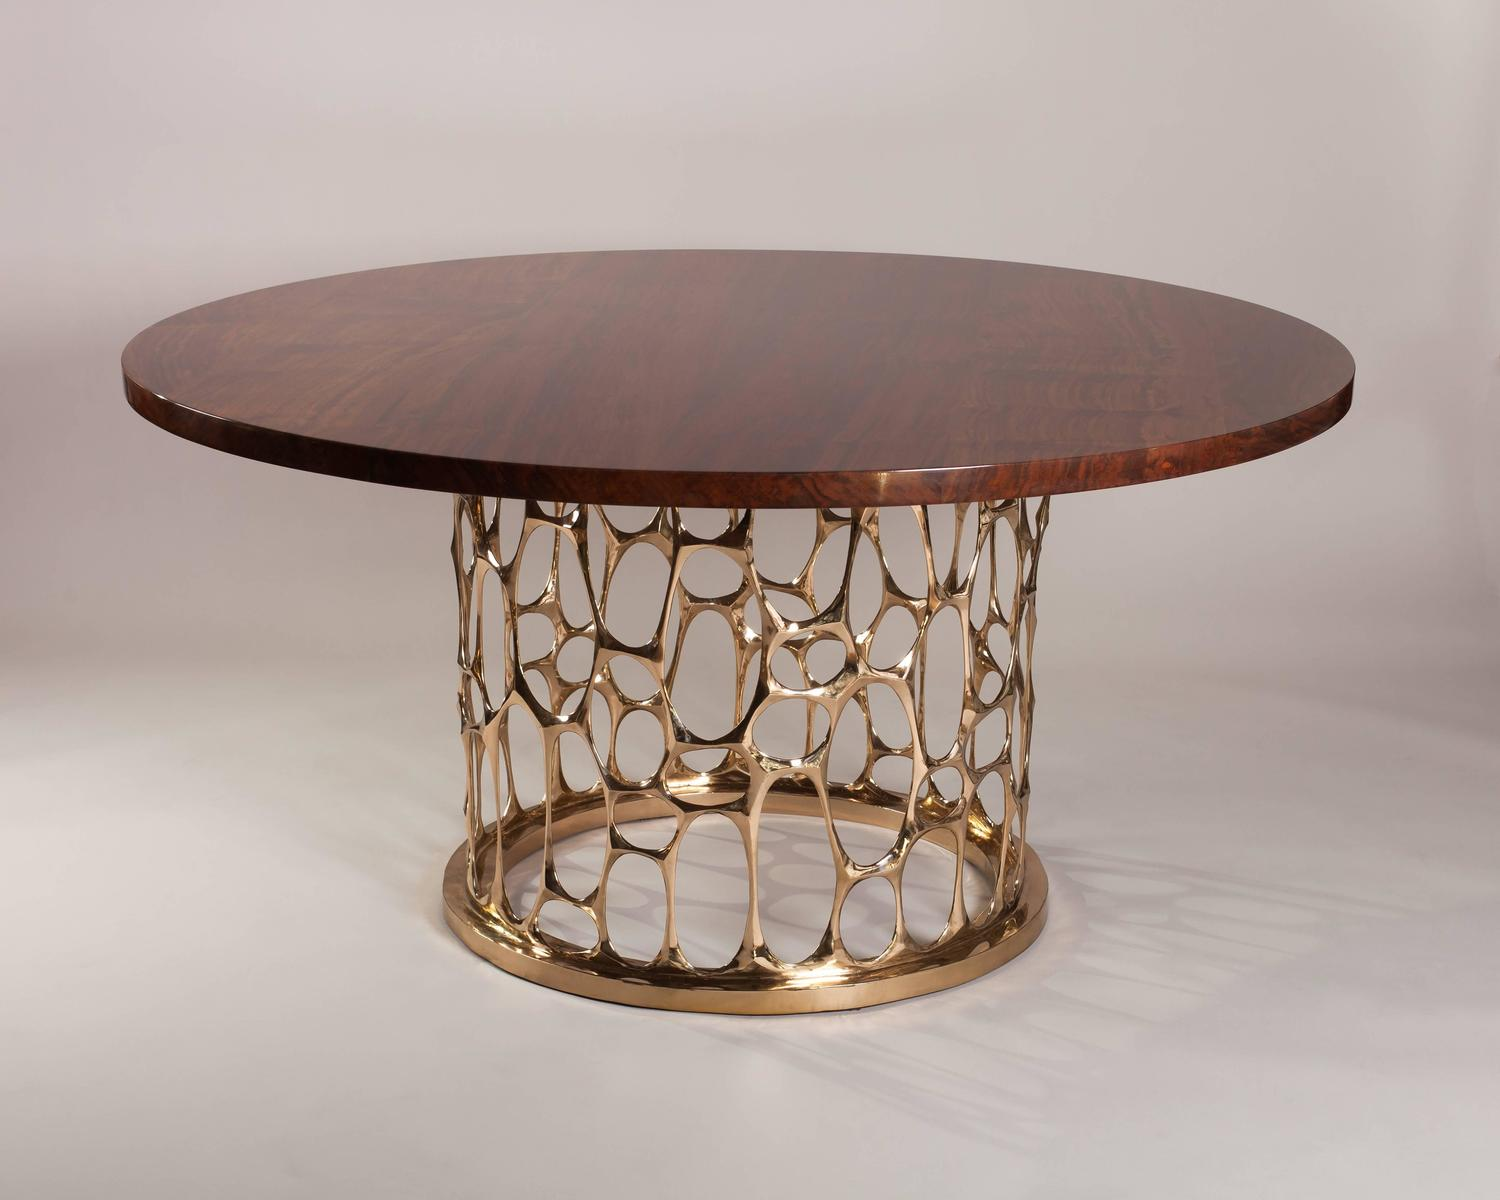 Homage to gaudi bronze dining table by nick king at 1stdibs - King furniture dining table ...